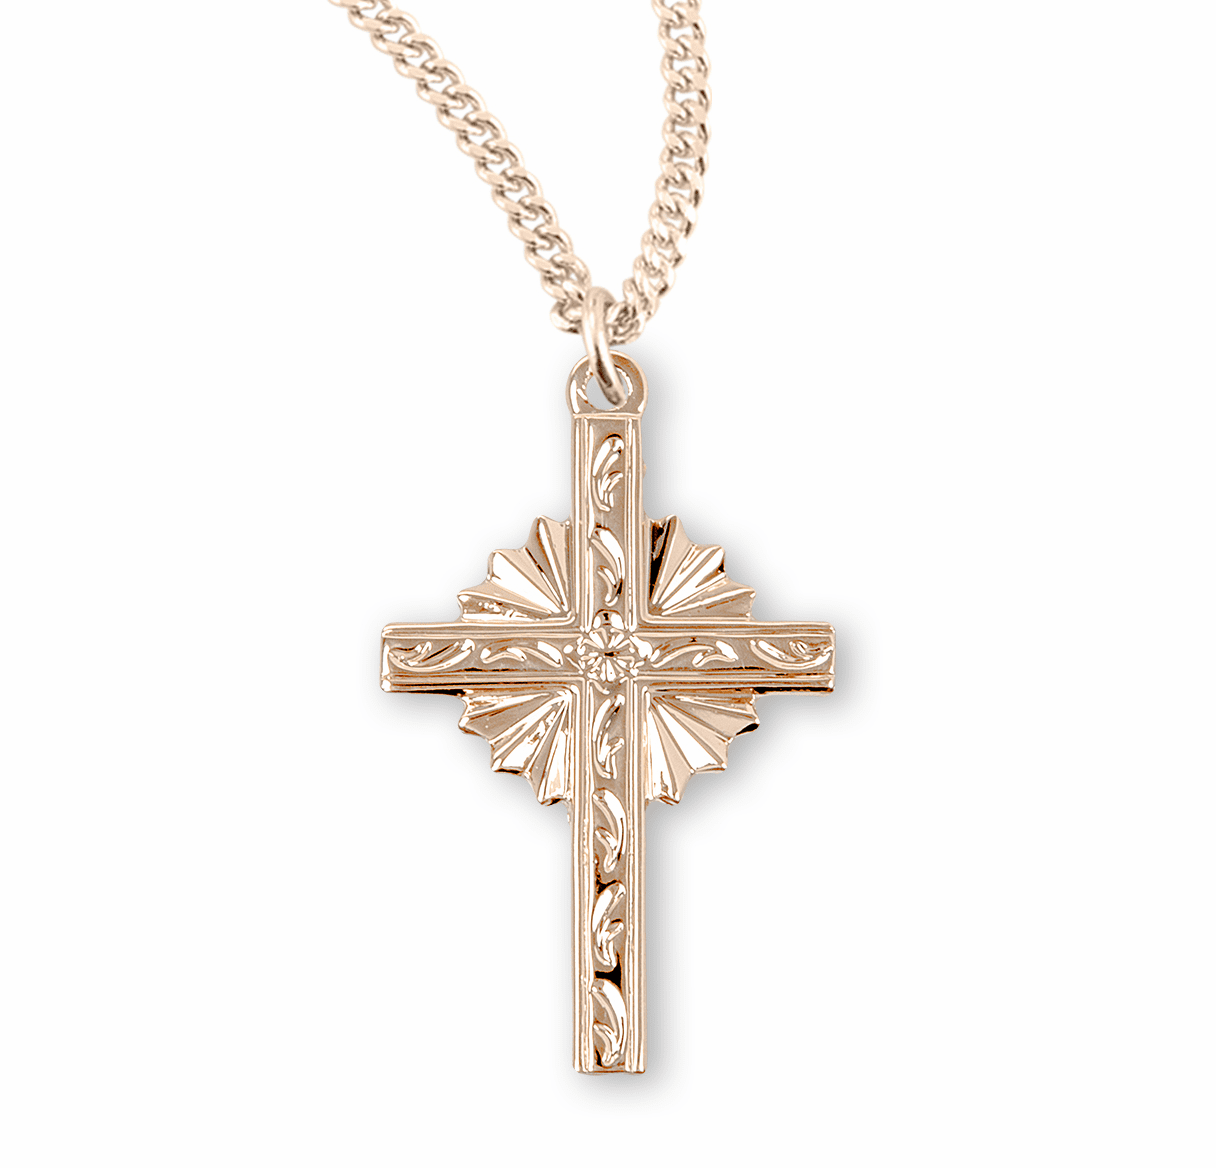 Engraved Vine Design Gold Fancy Cross Necklace by HMH Religious